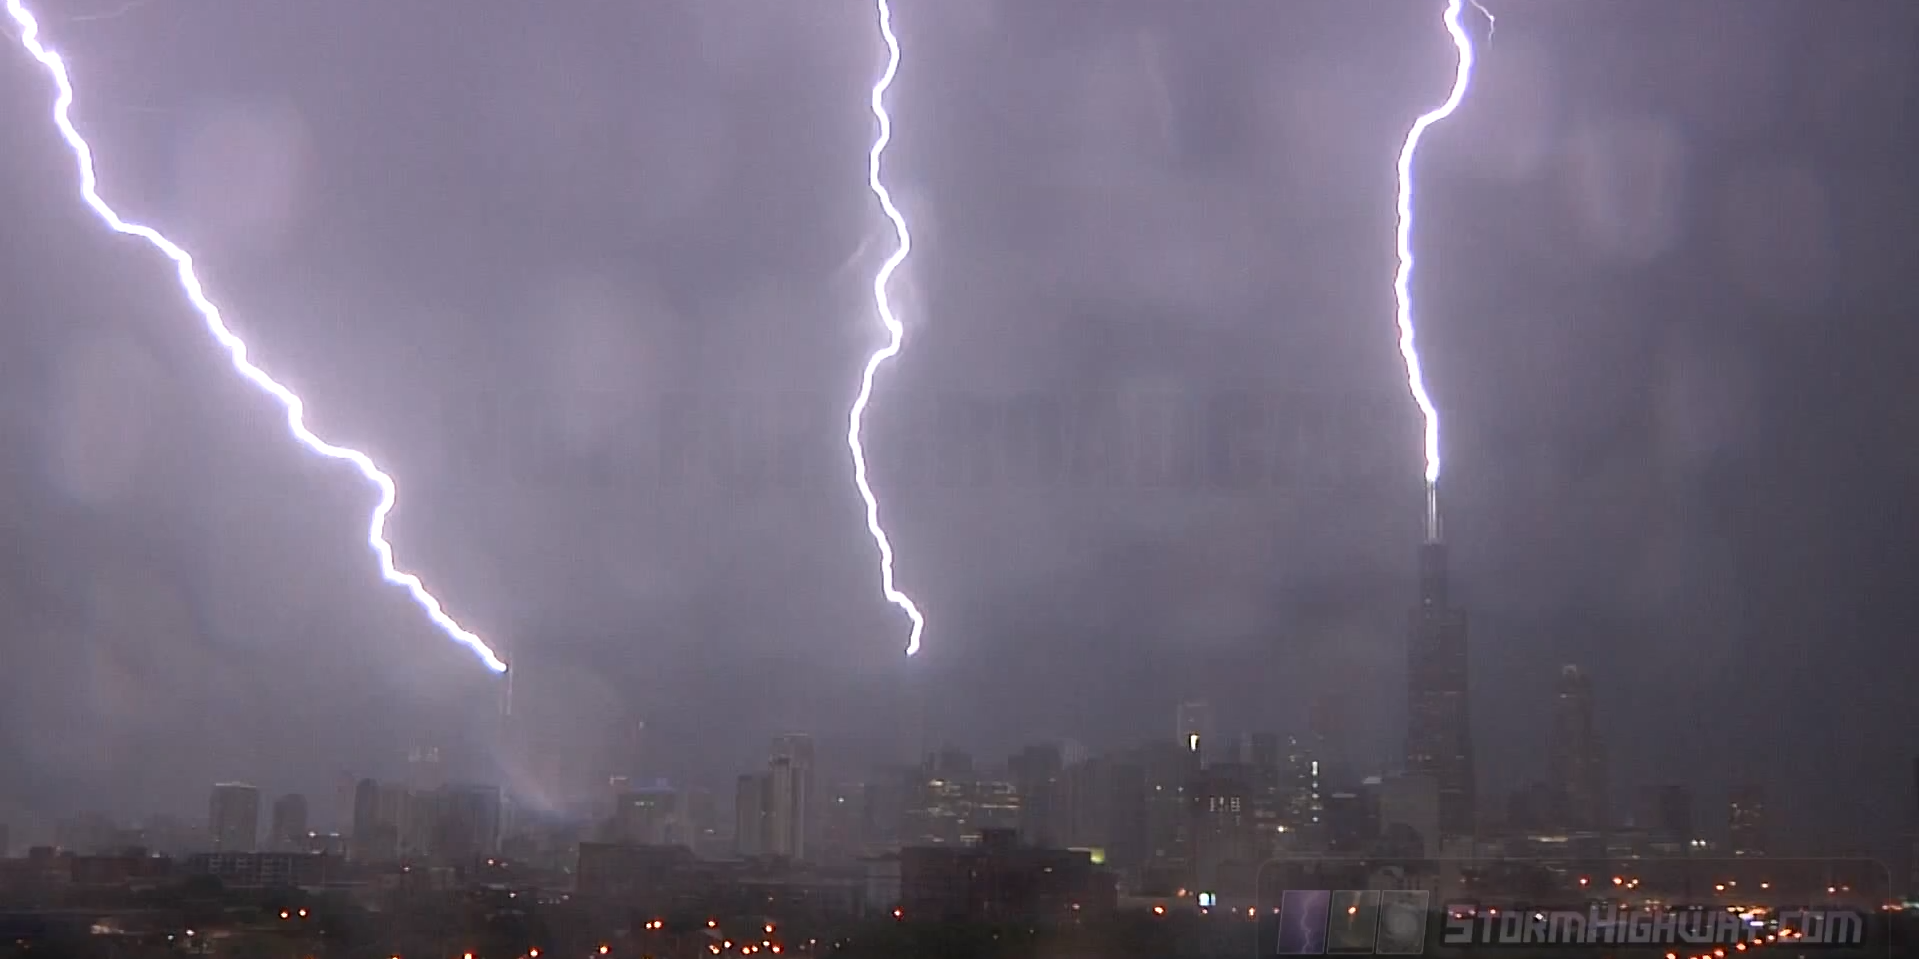 Insane Lighting Storm Hits Three Iconic Chicago Towers At Once Via DailyMail, by stormchaser Dan Robinson / YouTube